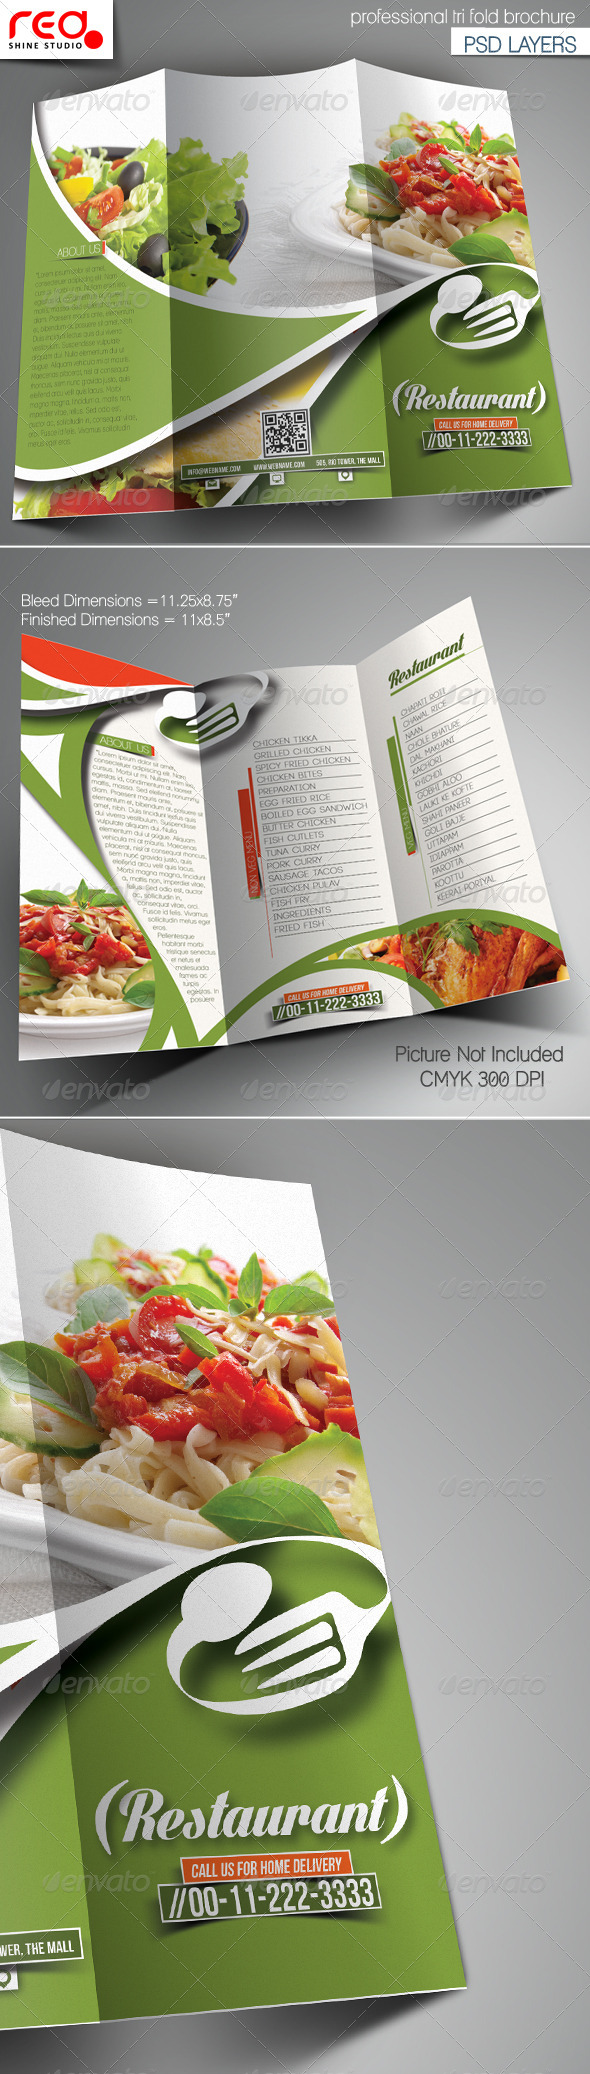 GraphicRiver Restaurant Trifold Brochure Template 7445331